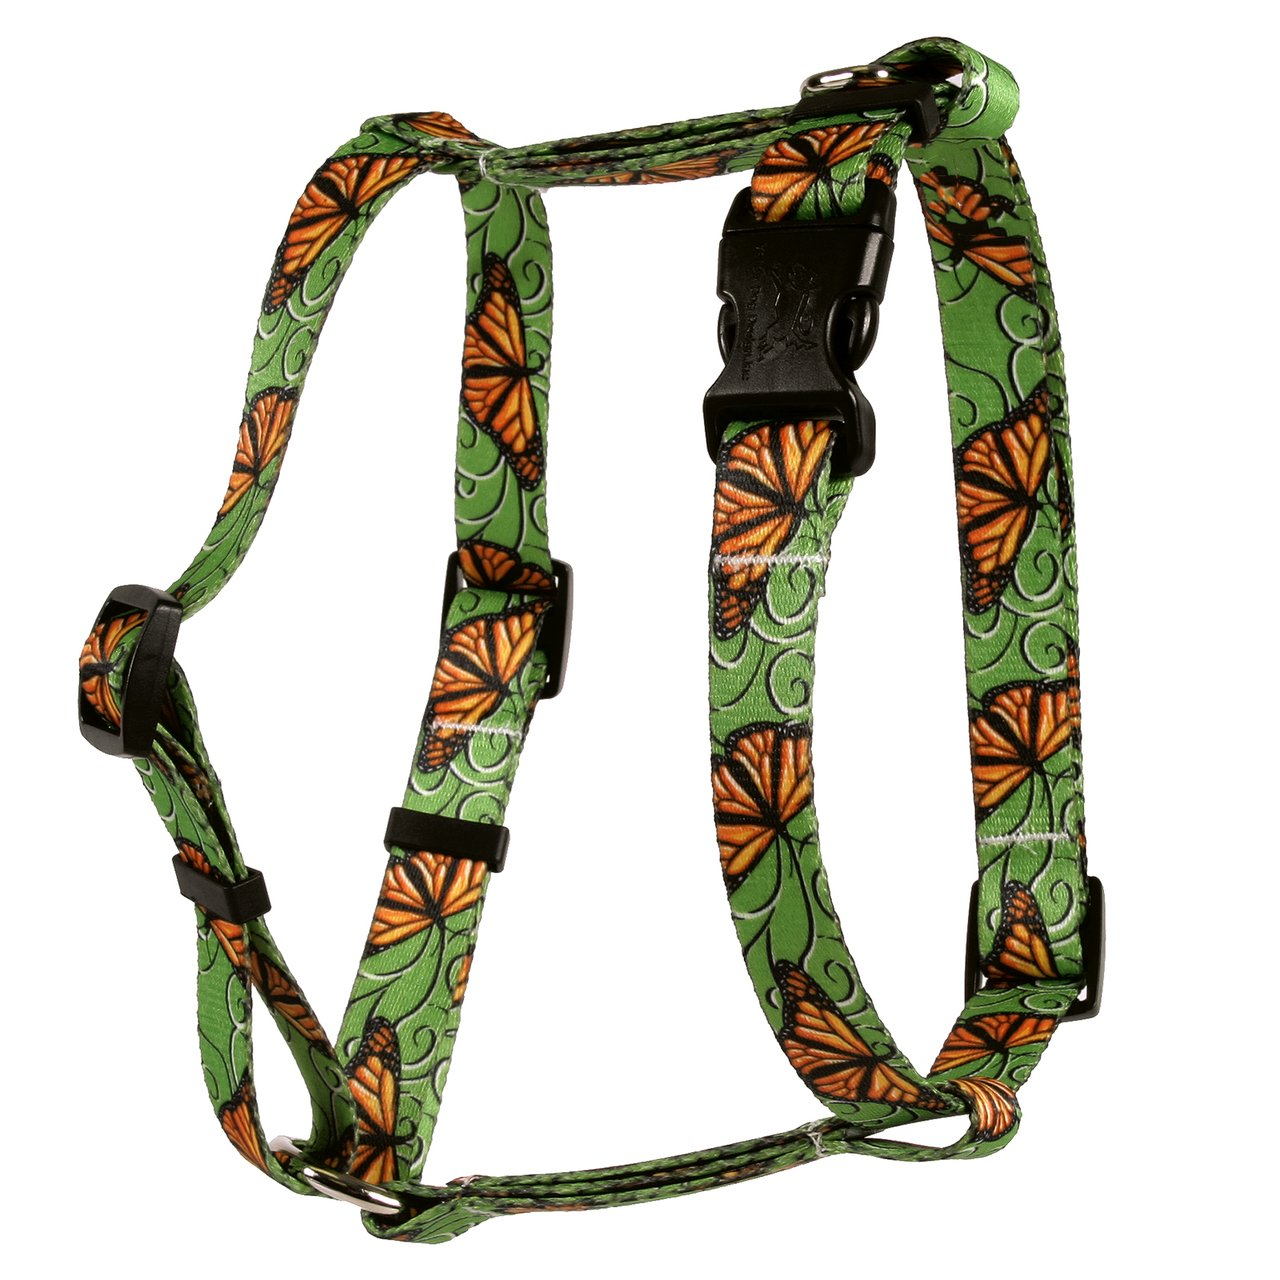 Yellow Dog Design Monarch Swirl Roman Style H Dog Harness, Small/Medium-3/4 Wide fits Chest of 14 to 20''